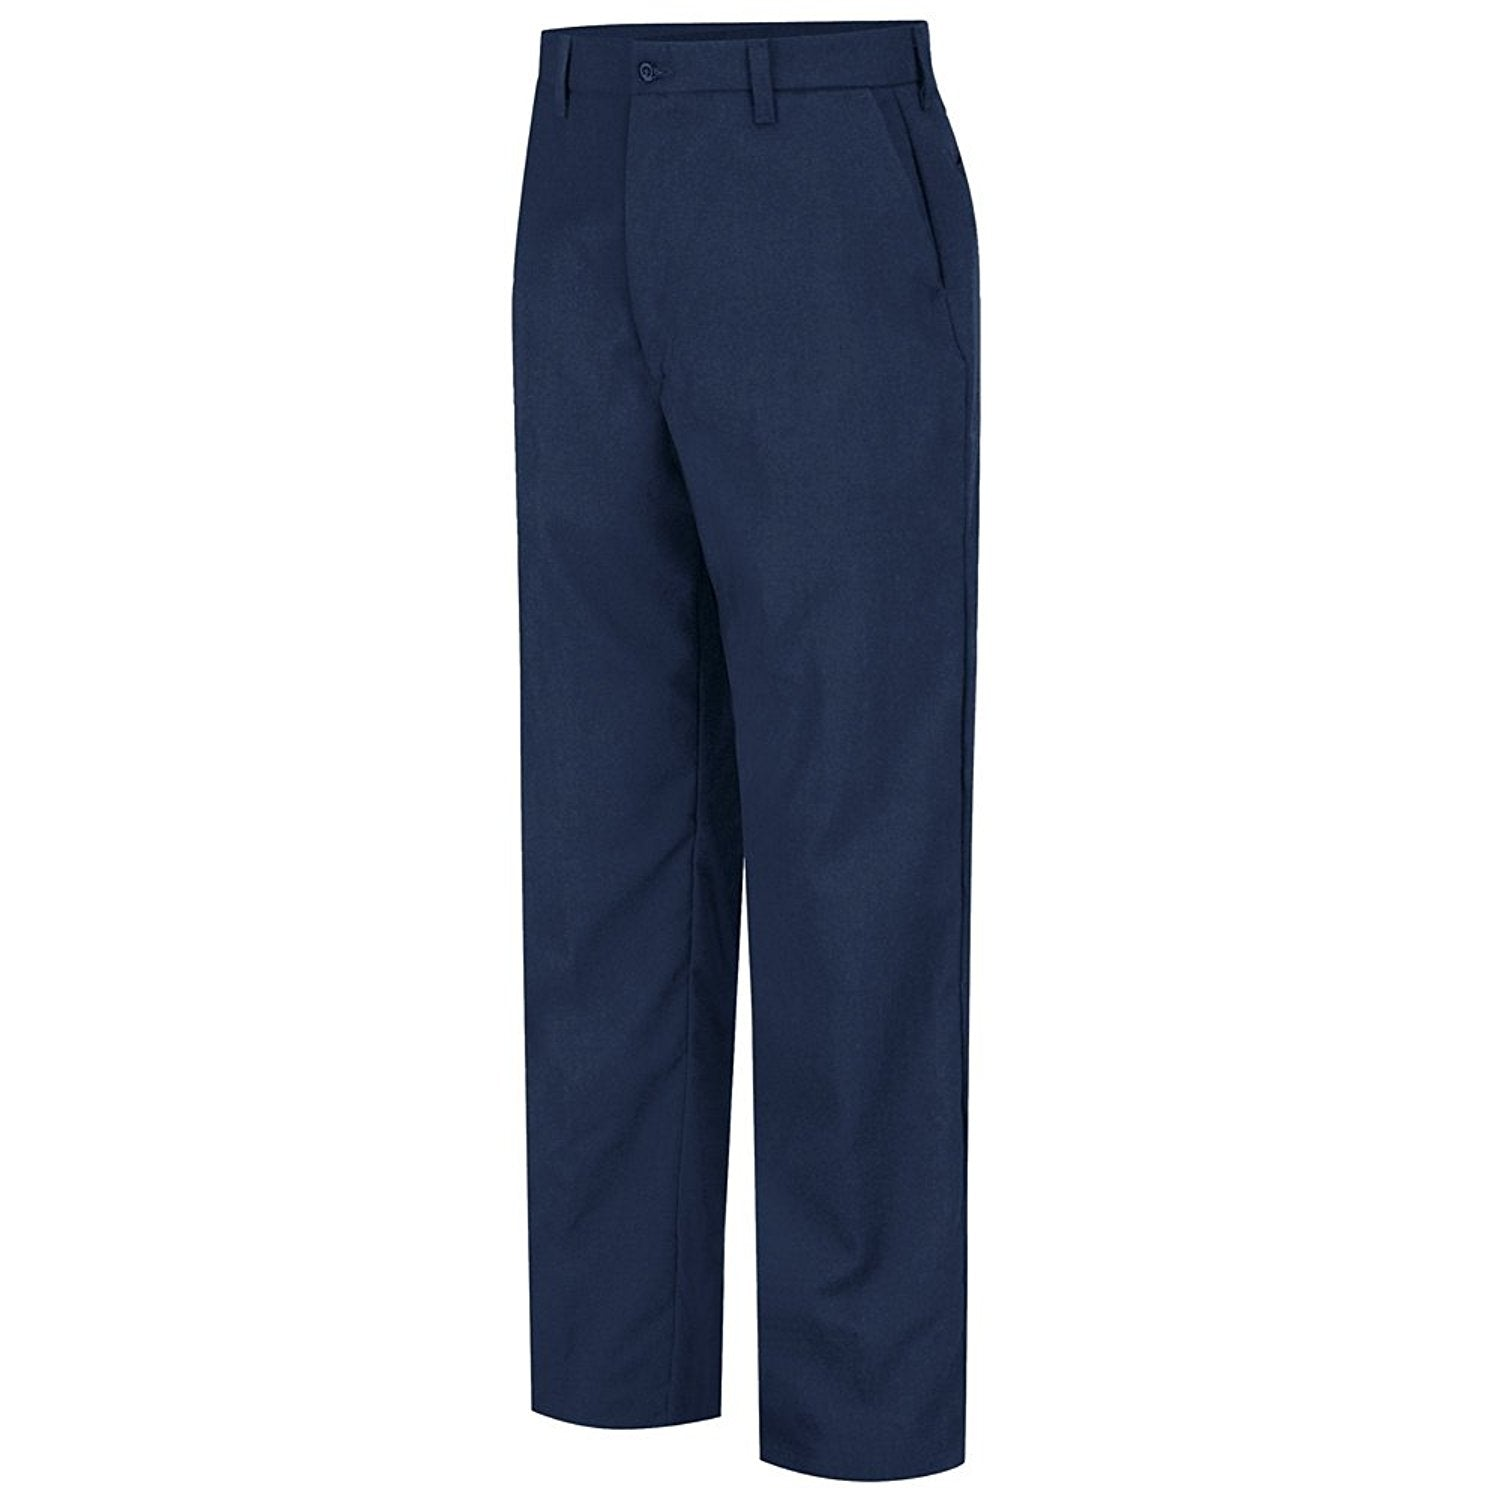 Men's Bulwark FR Work Pant - CoolTouch® 2 - 5.8 oz Navy